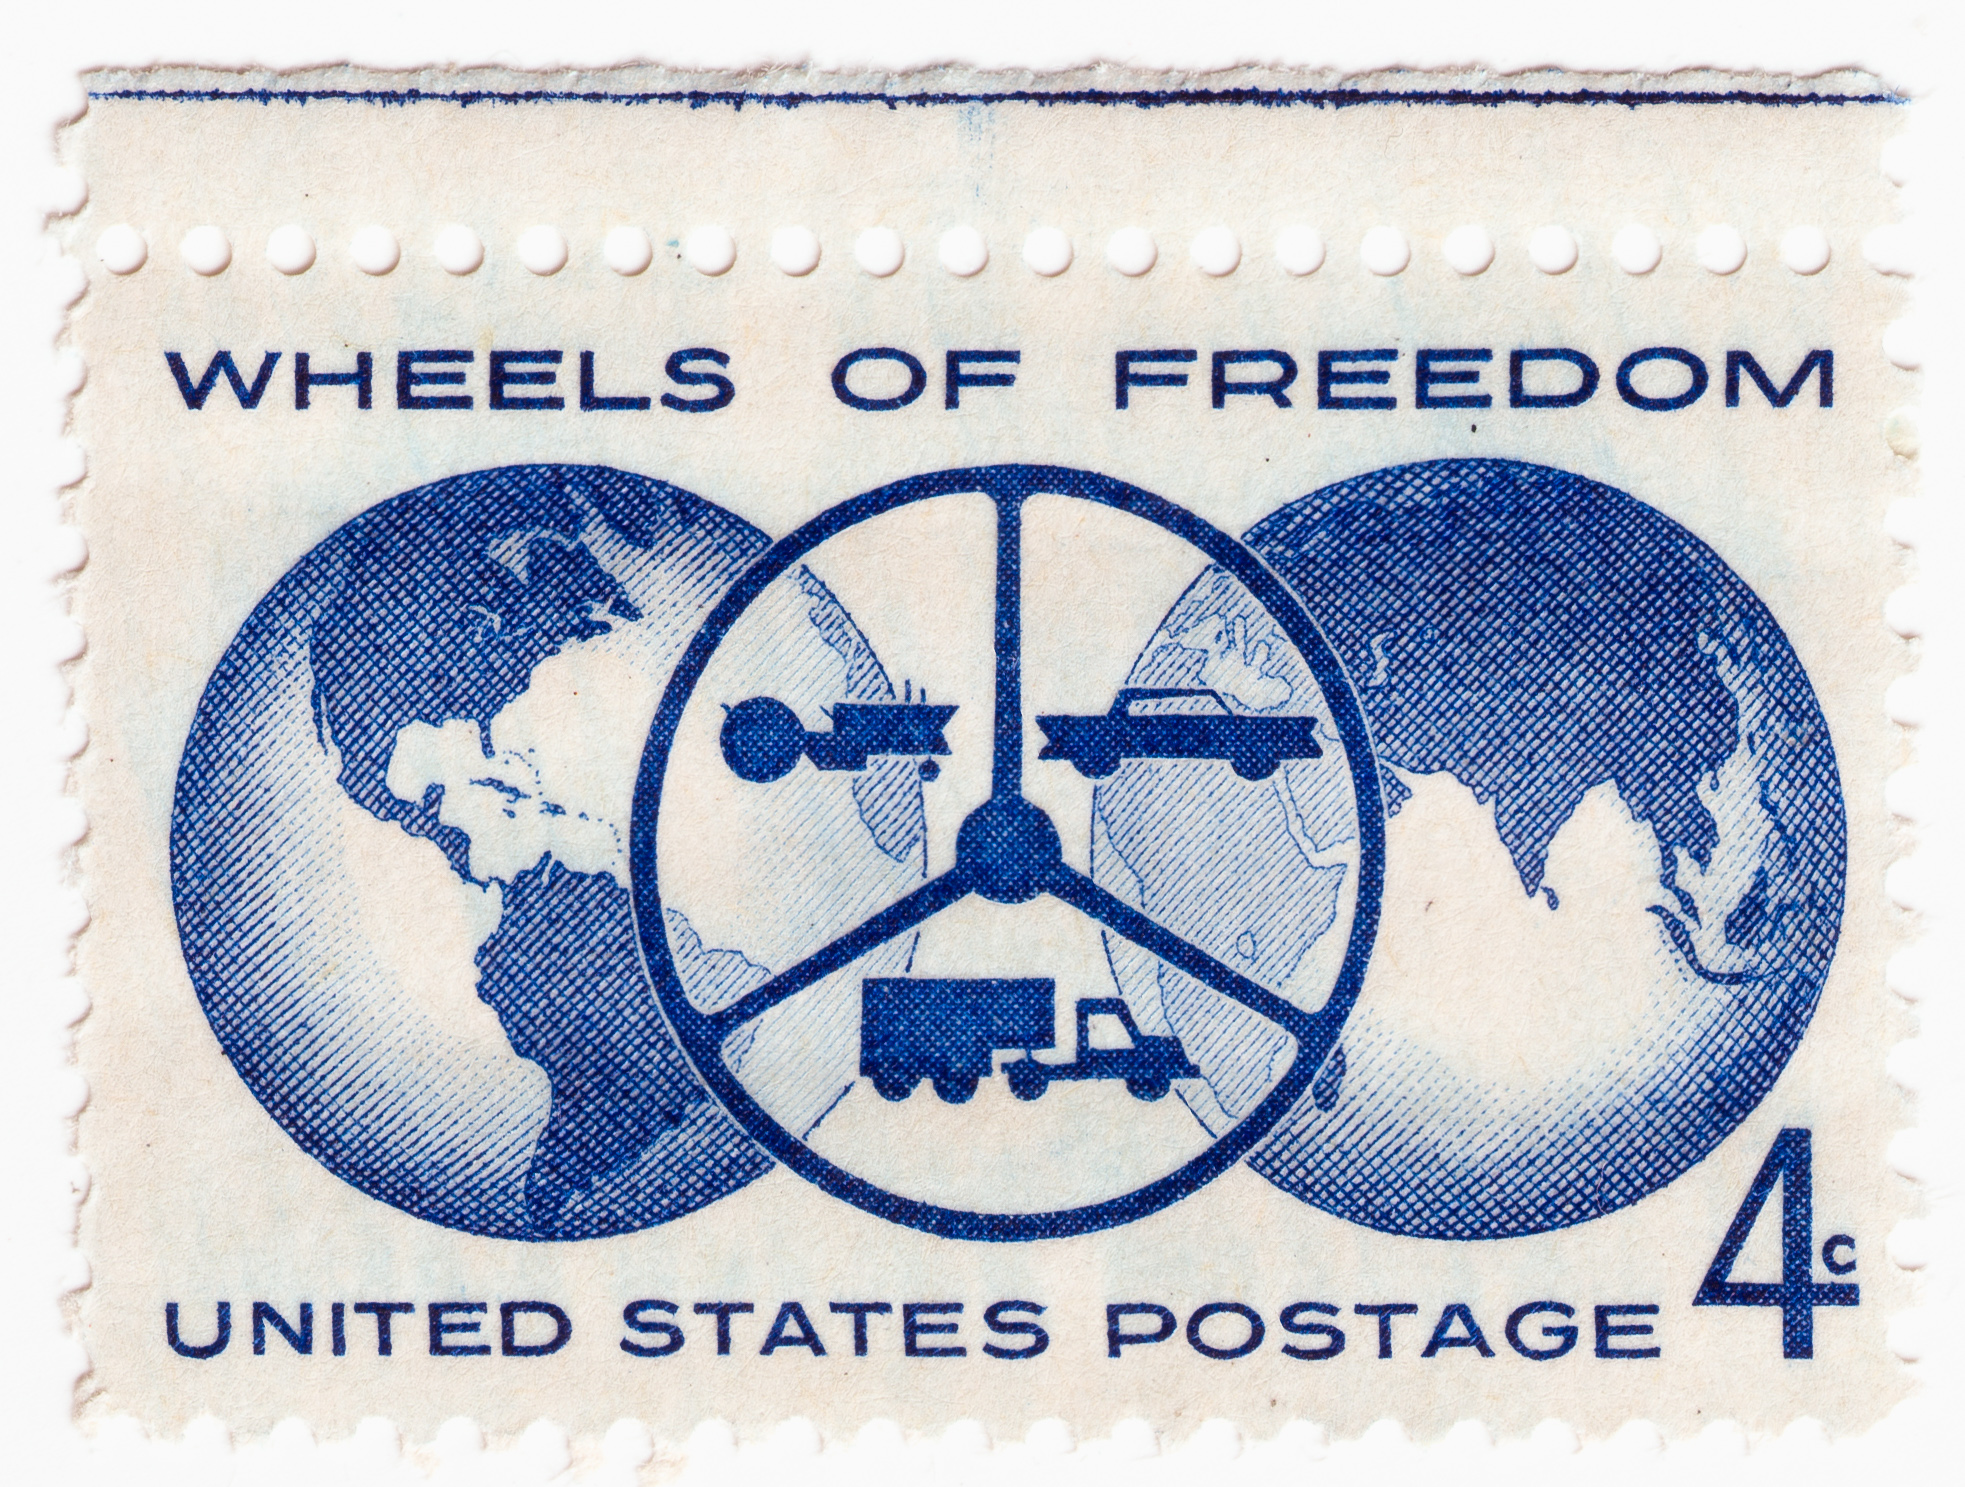 Wheels of Freedom (1960)